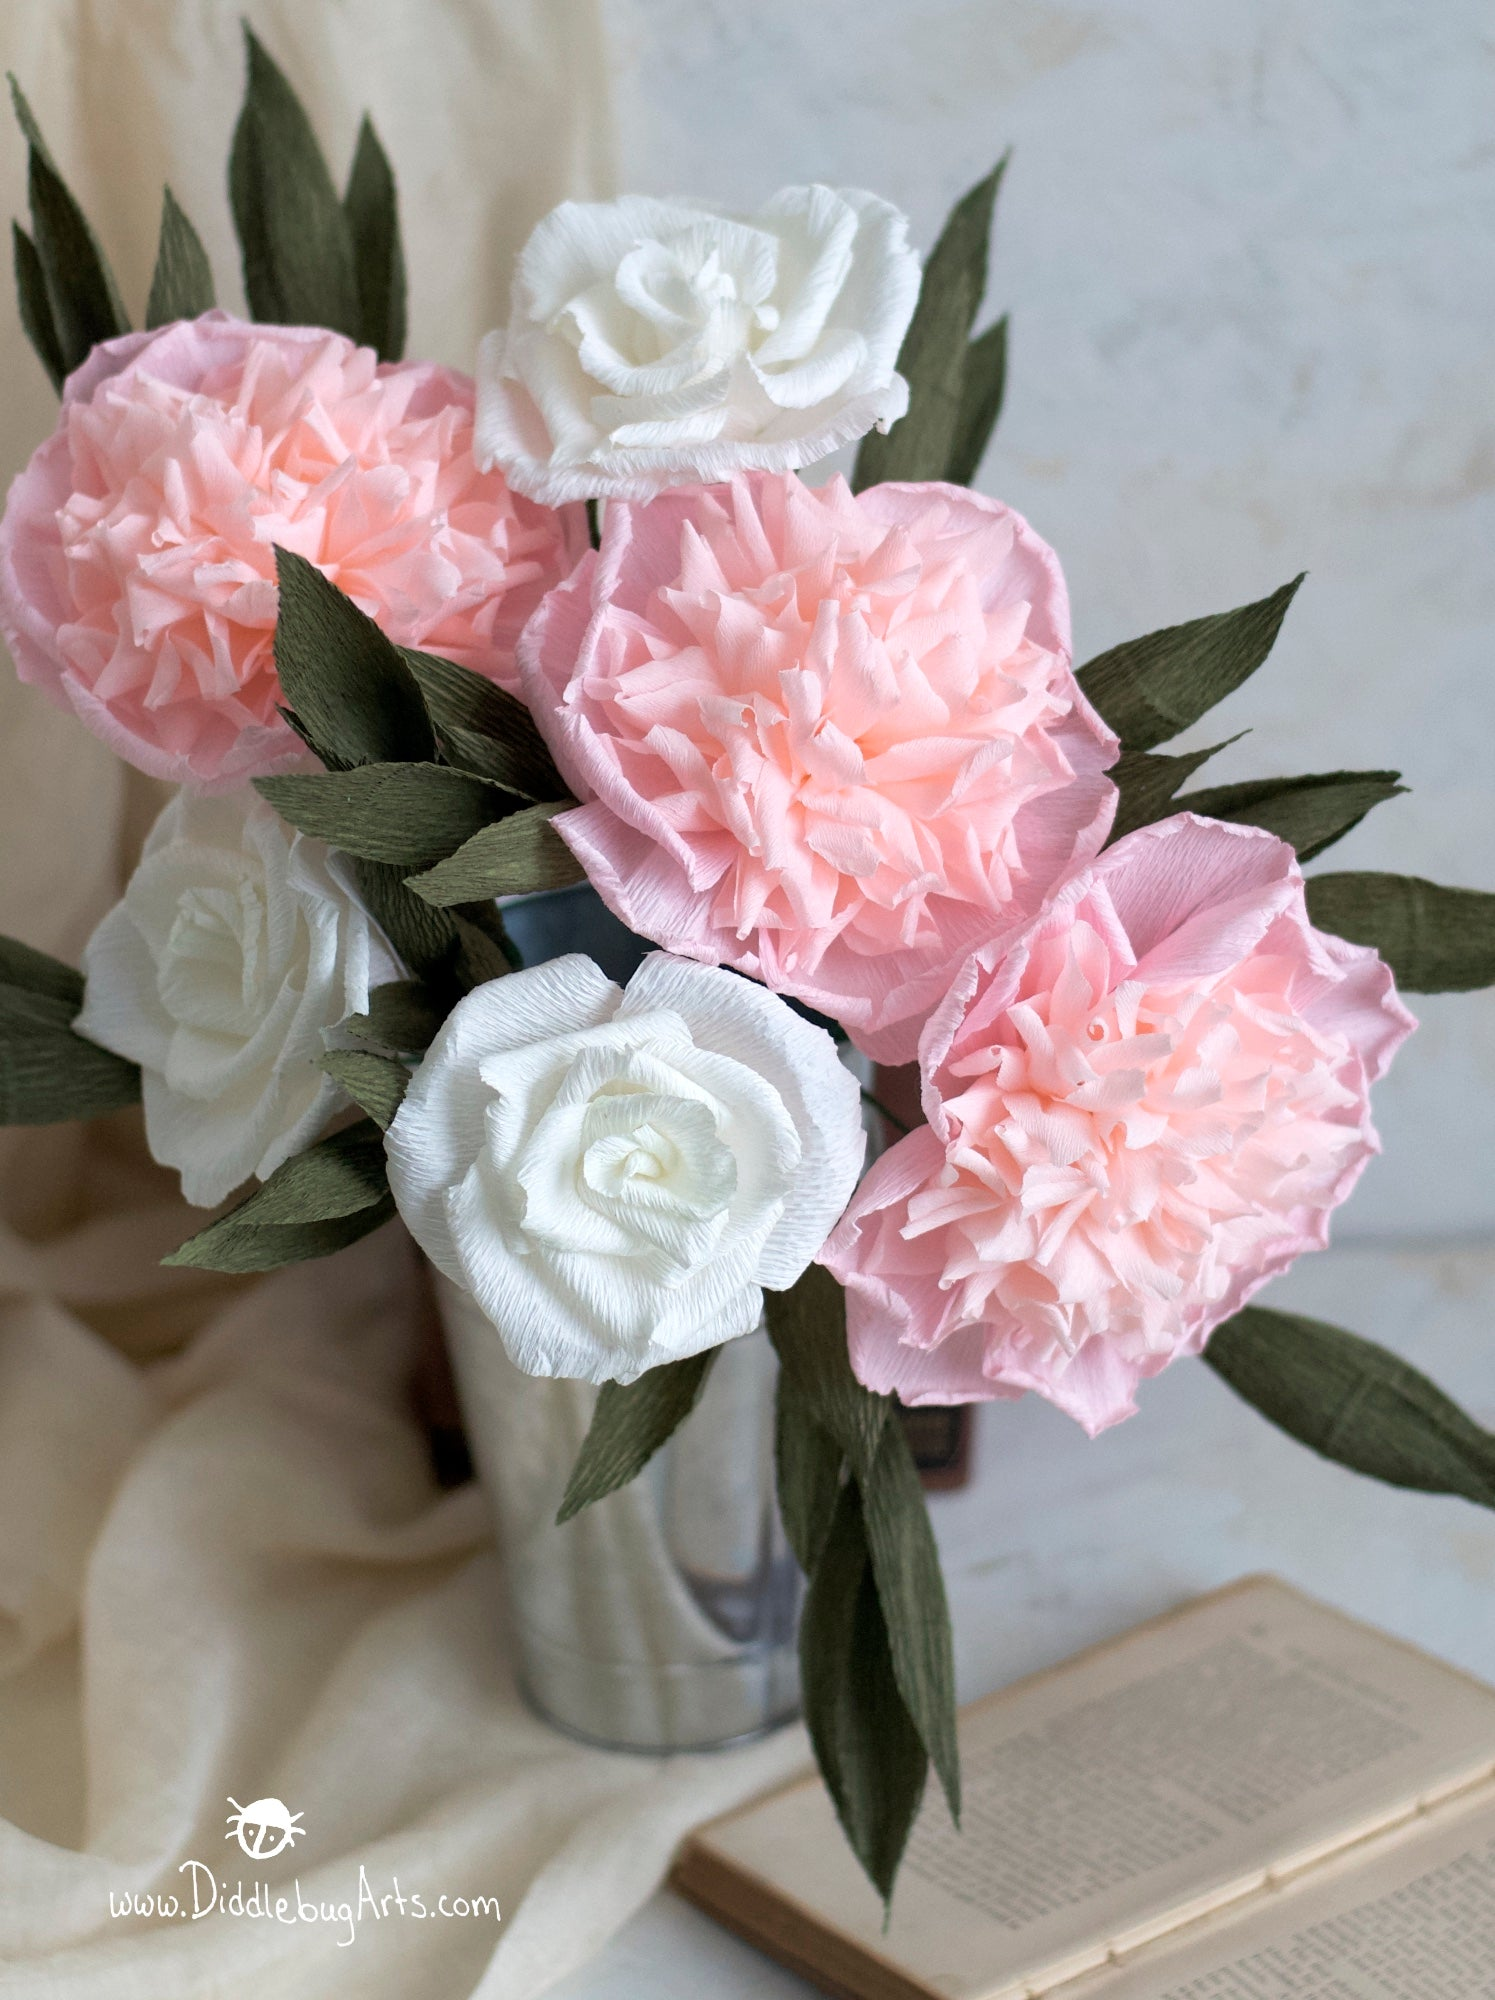 vase with pink paper peonies and white roses